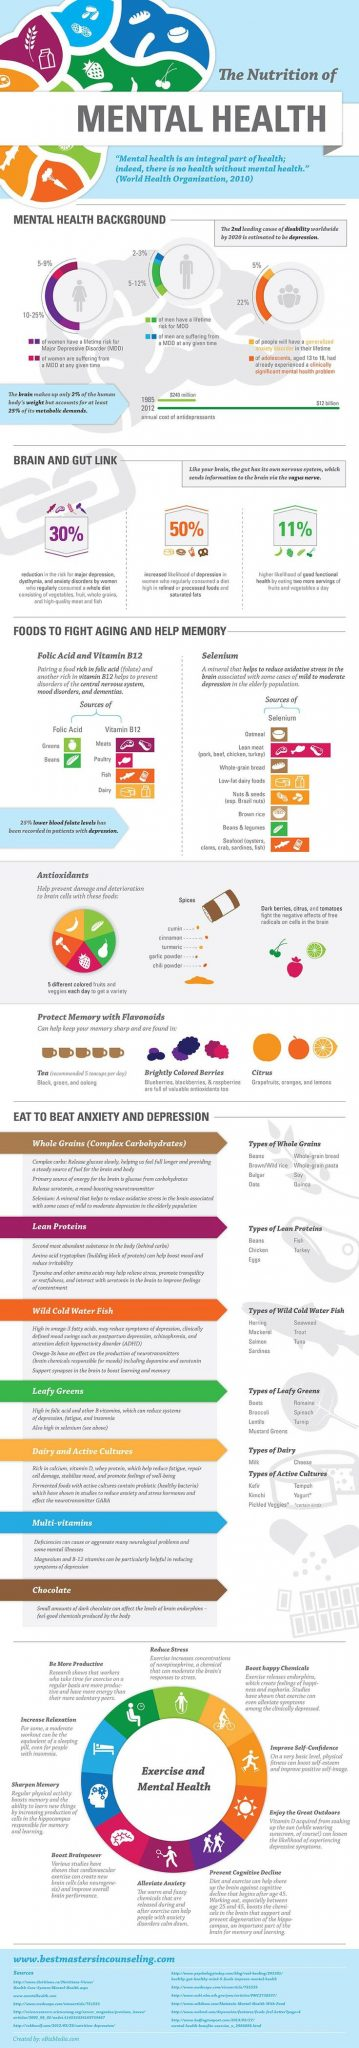 mental health infographic